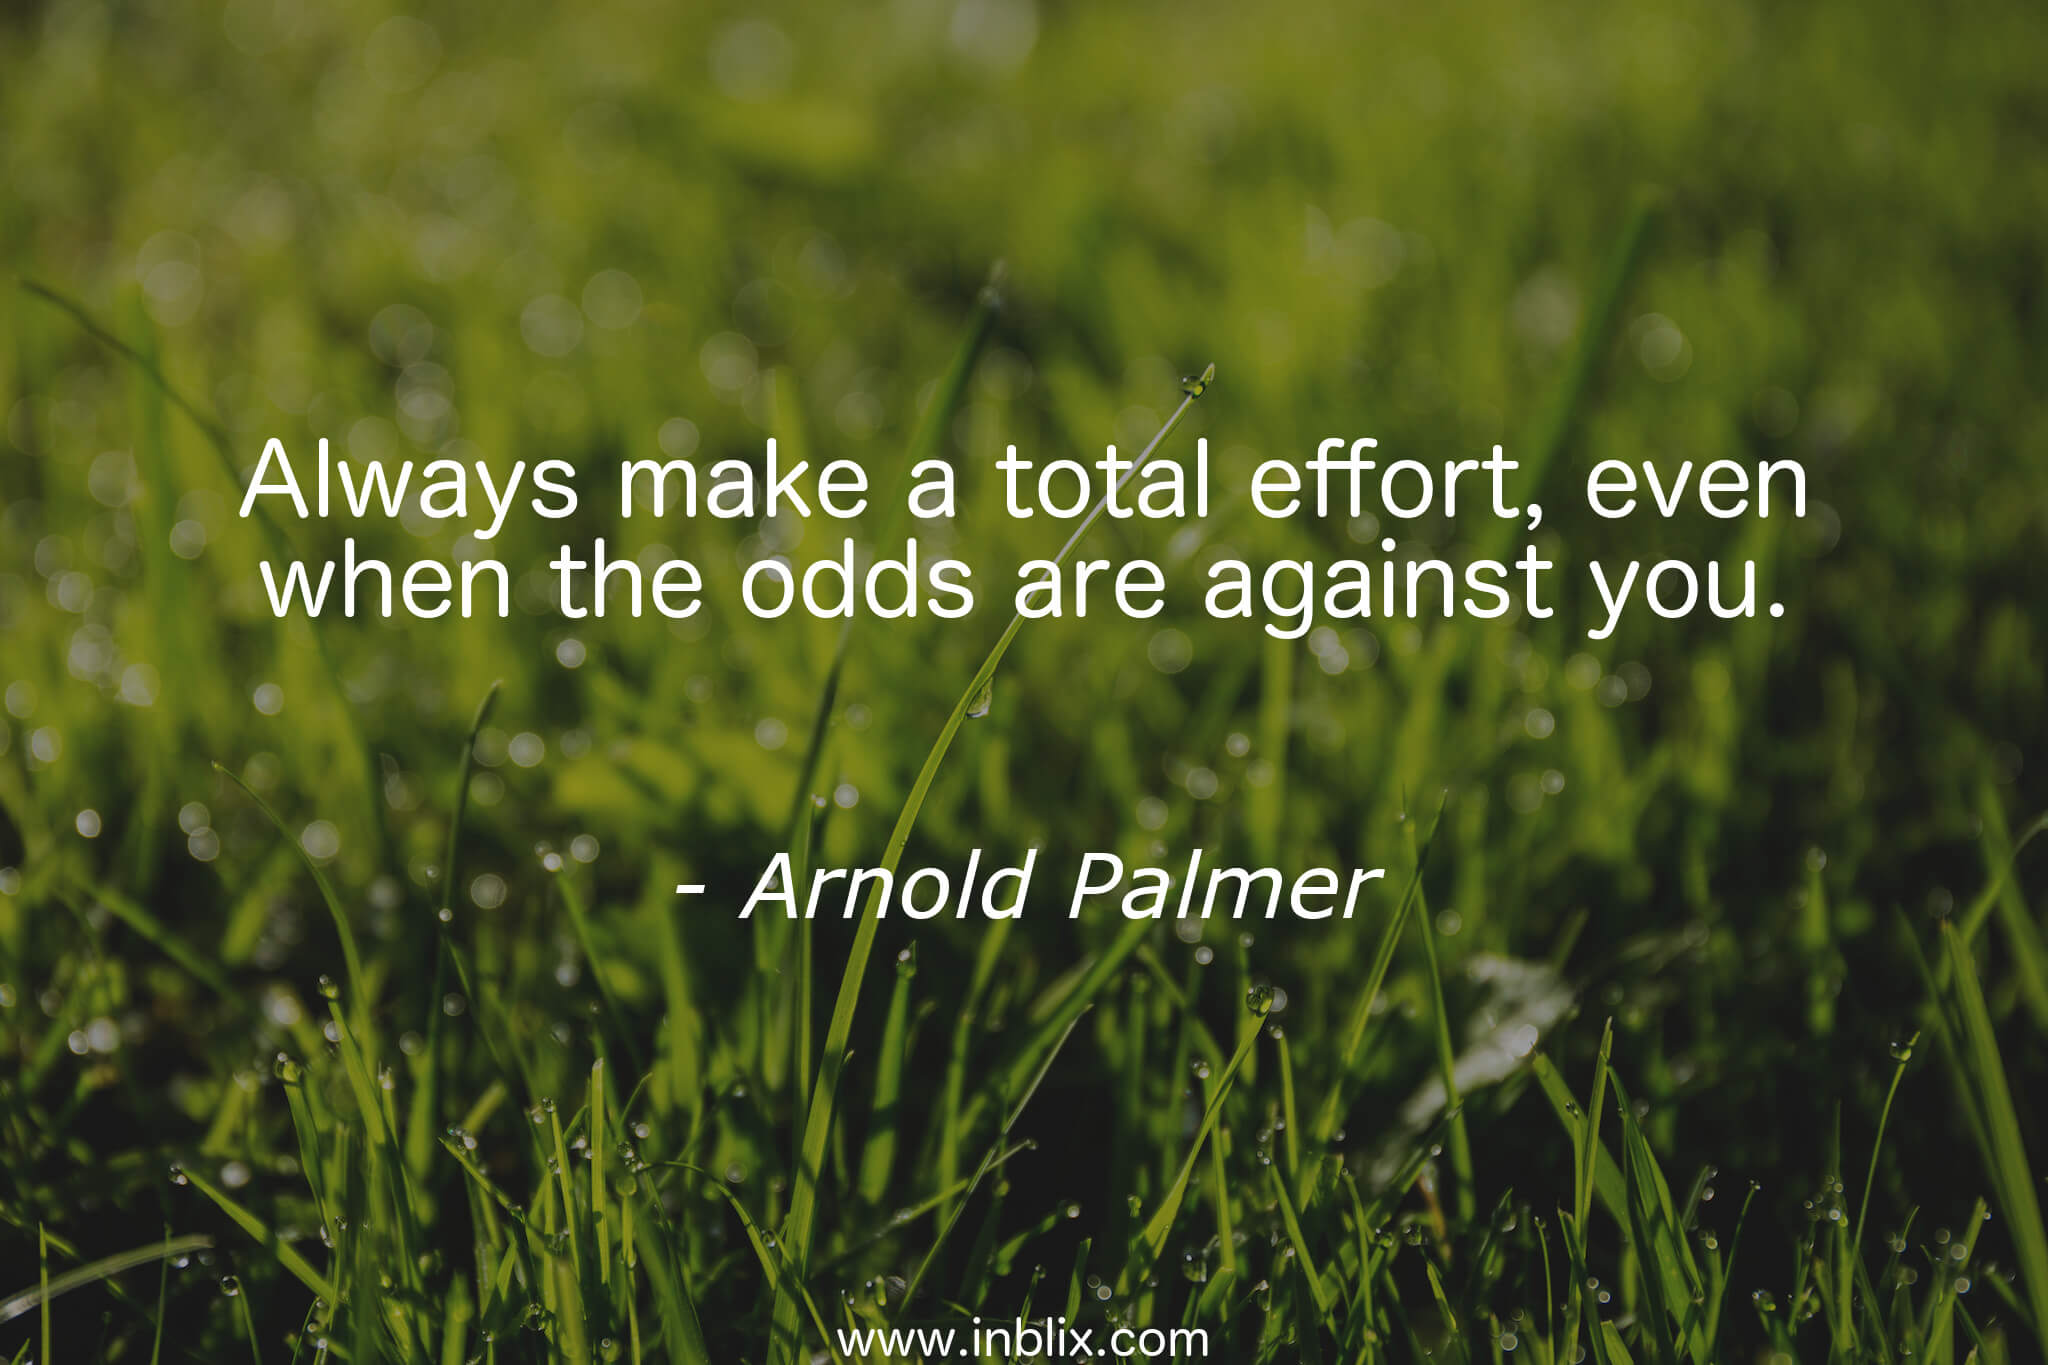 Always make a total effort, even when the odds are against you.